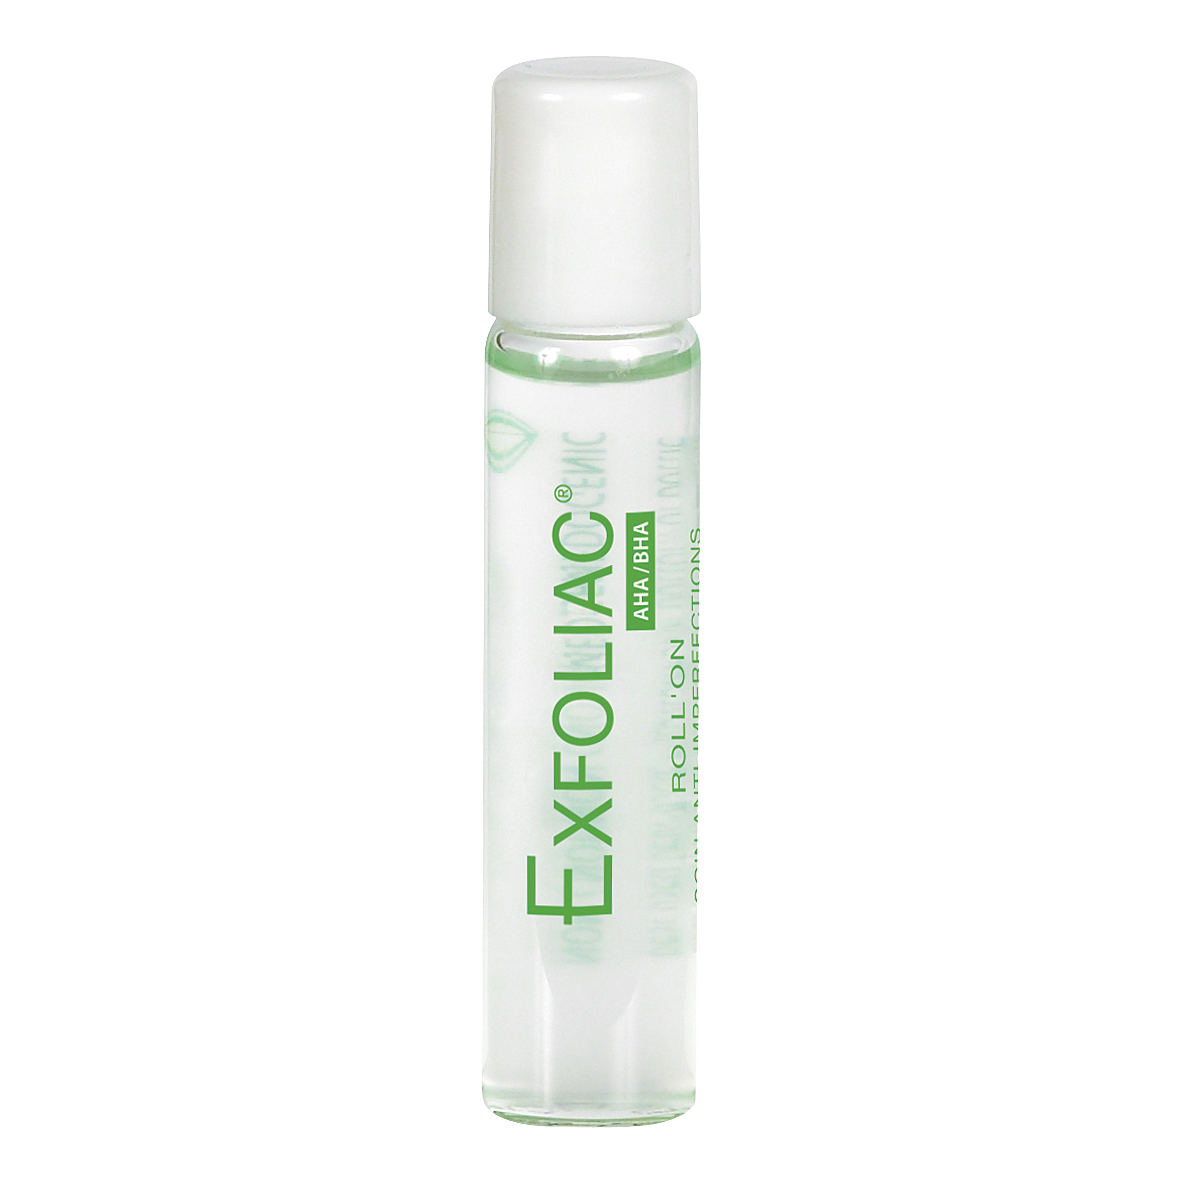 Exfoliac Roll-on za ciljano delovanje